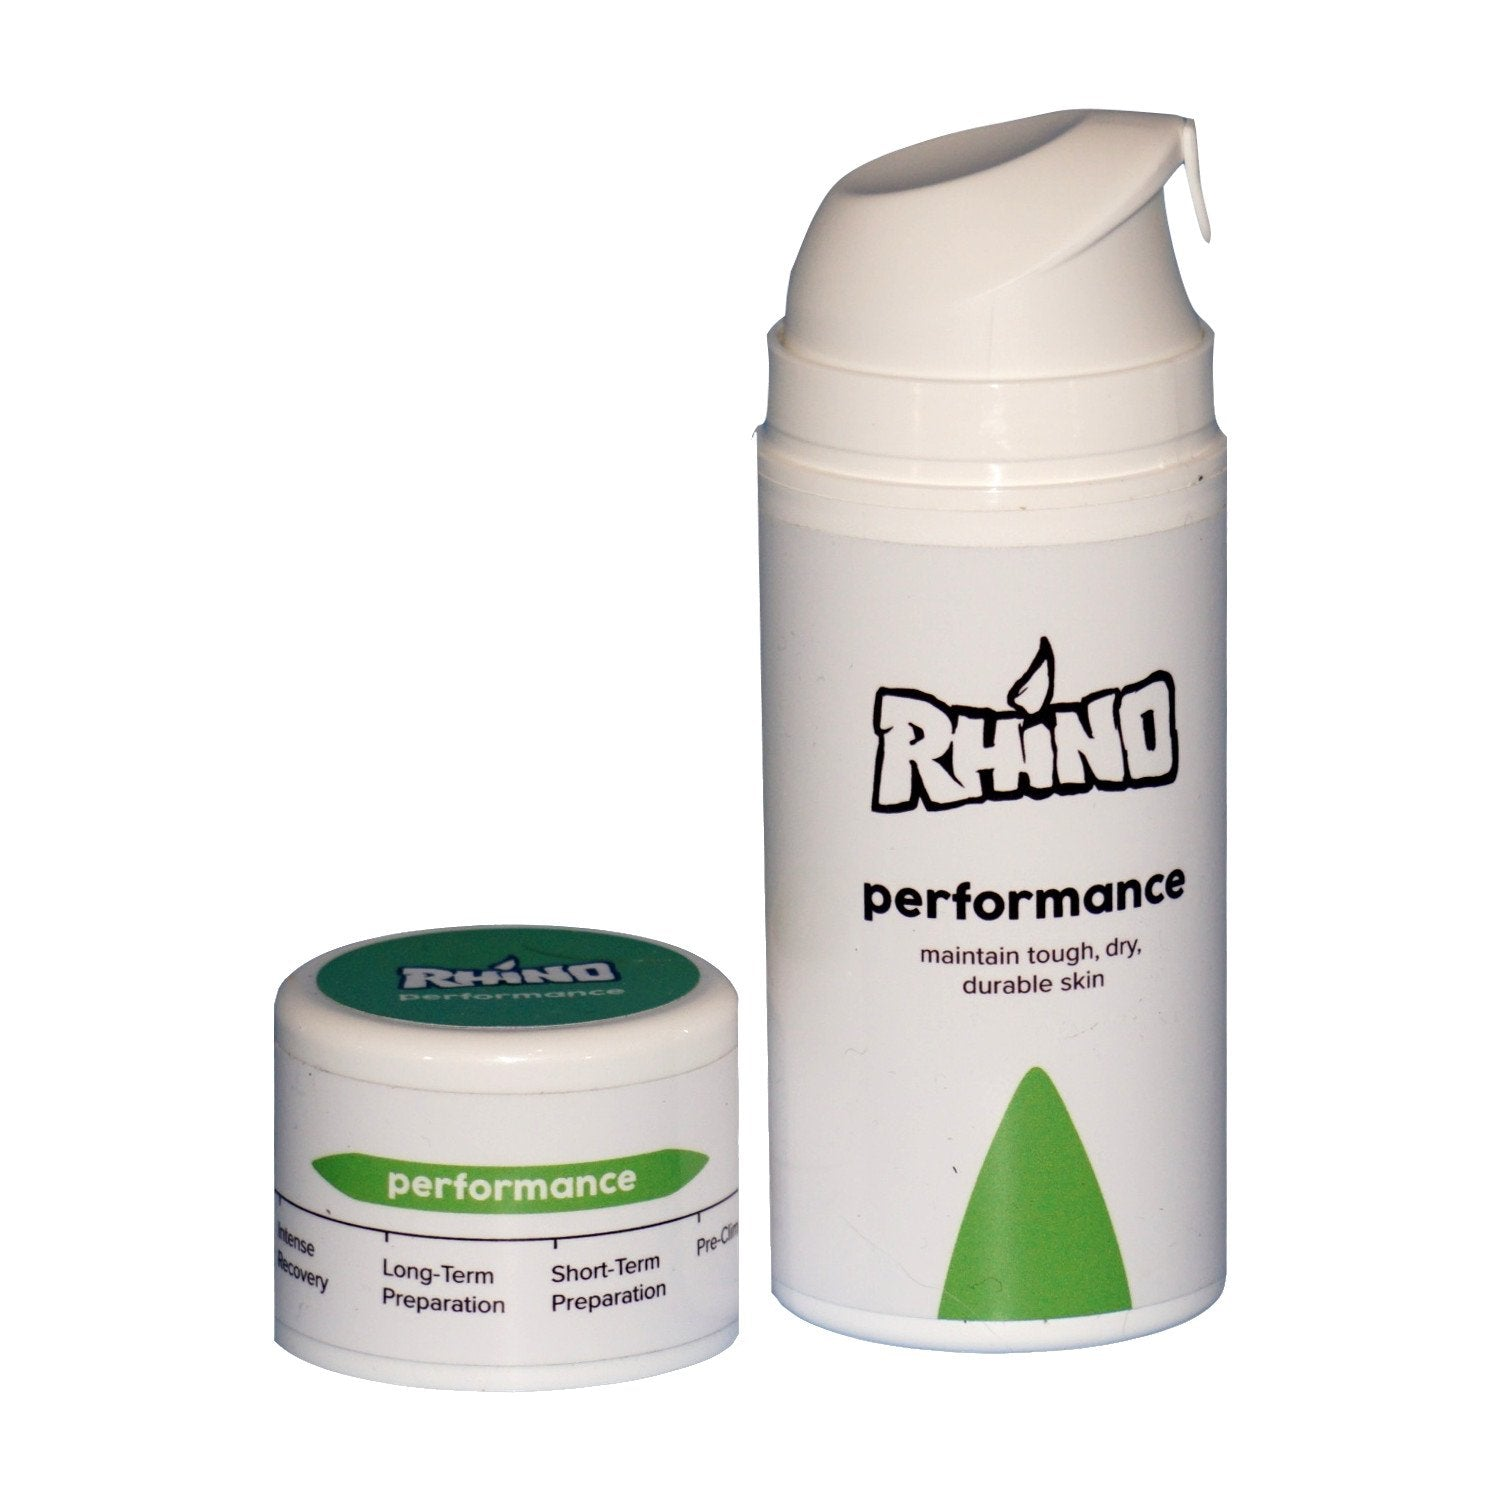 Rhino Skin Solutions PERFORMANCE (3.5oz/100ml)